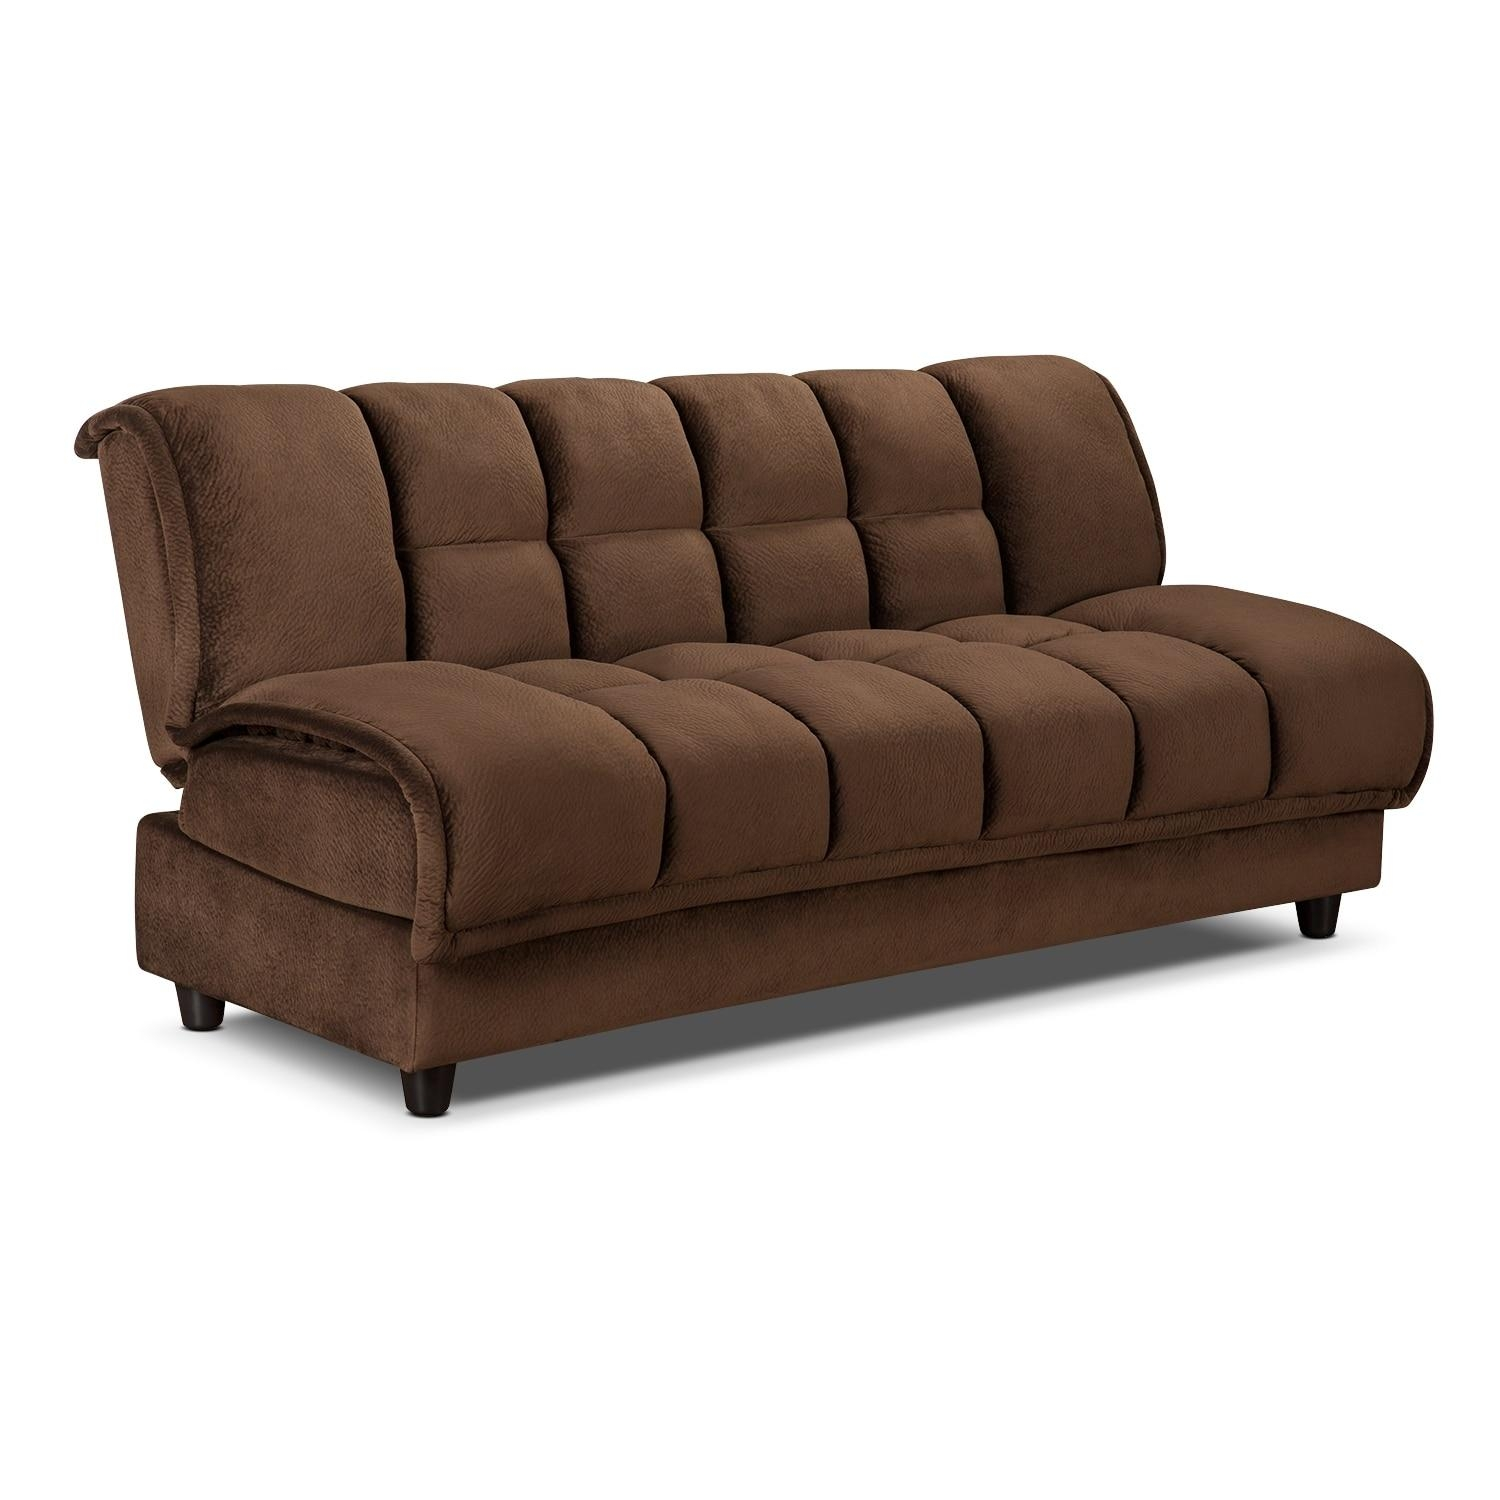 Sofas Center : Evelyn Designer Style Tufted Back Fabric Sofa For Denver Sleeper Sofas (Image 14 of 20)